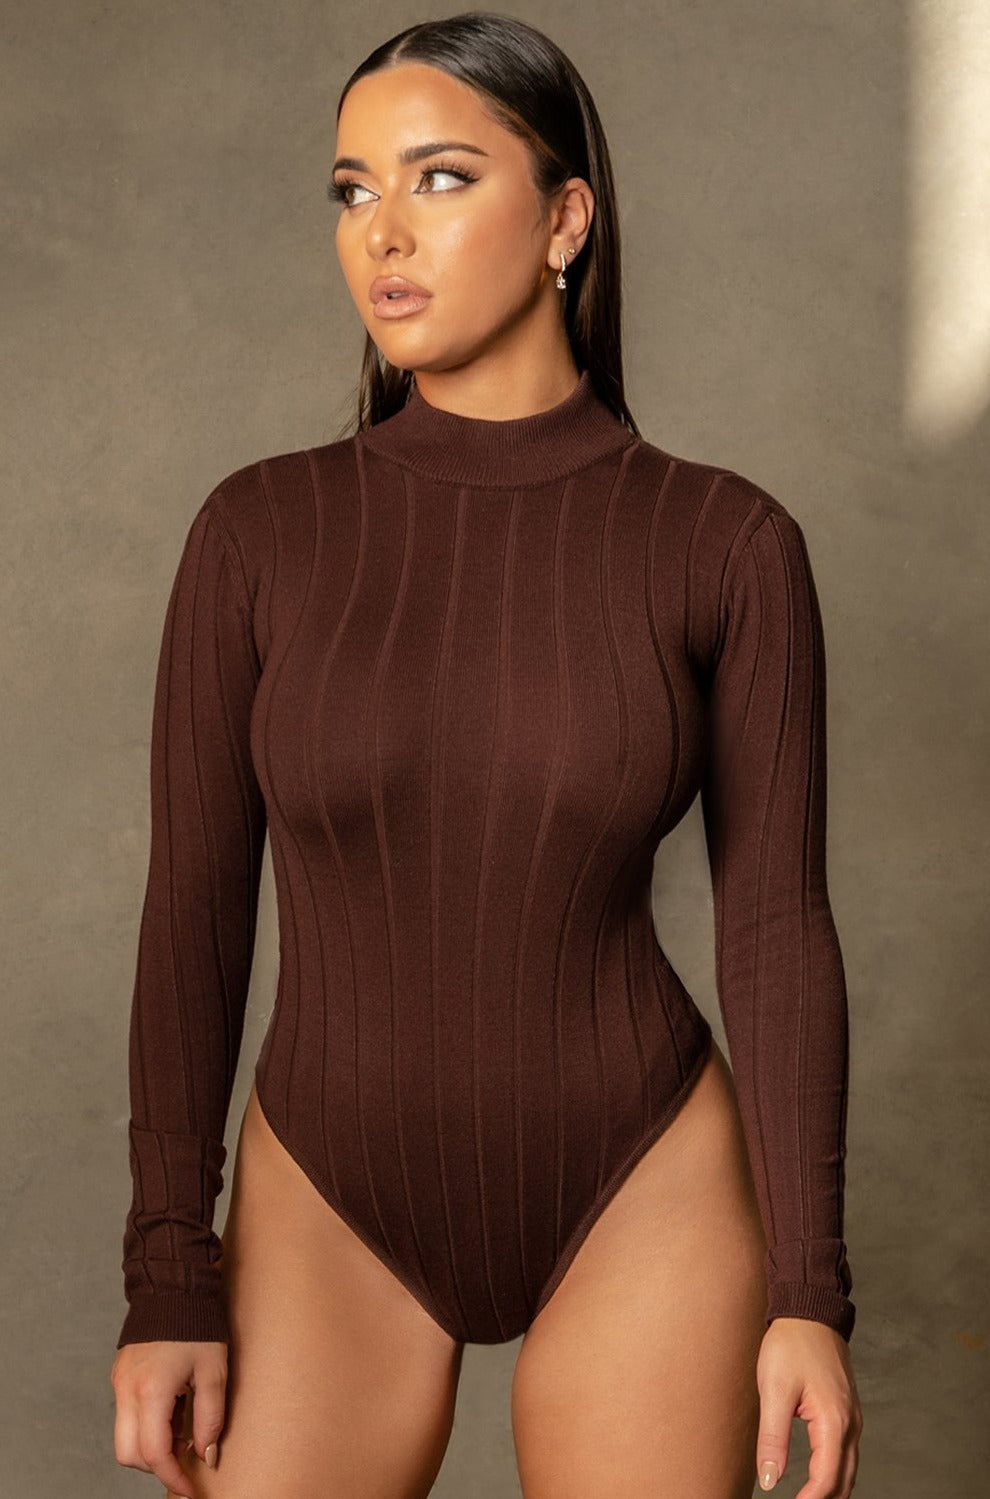 Shania Wide Rib Crew Neck Bodysuit - Chocolate - MESHKI ?id=16109895385163